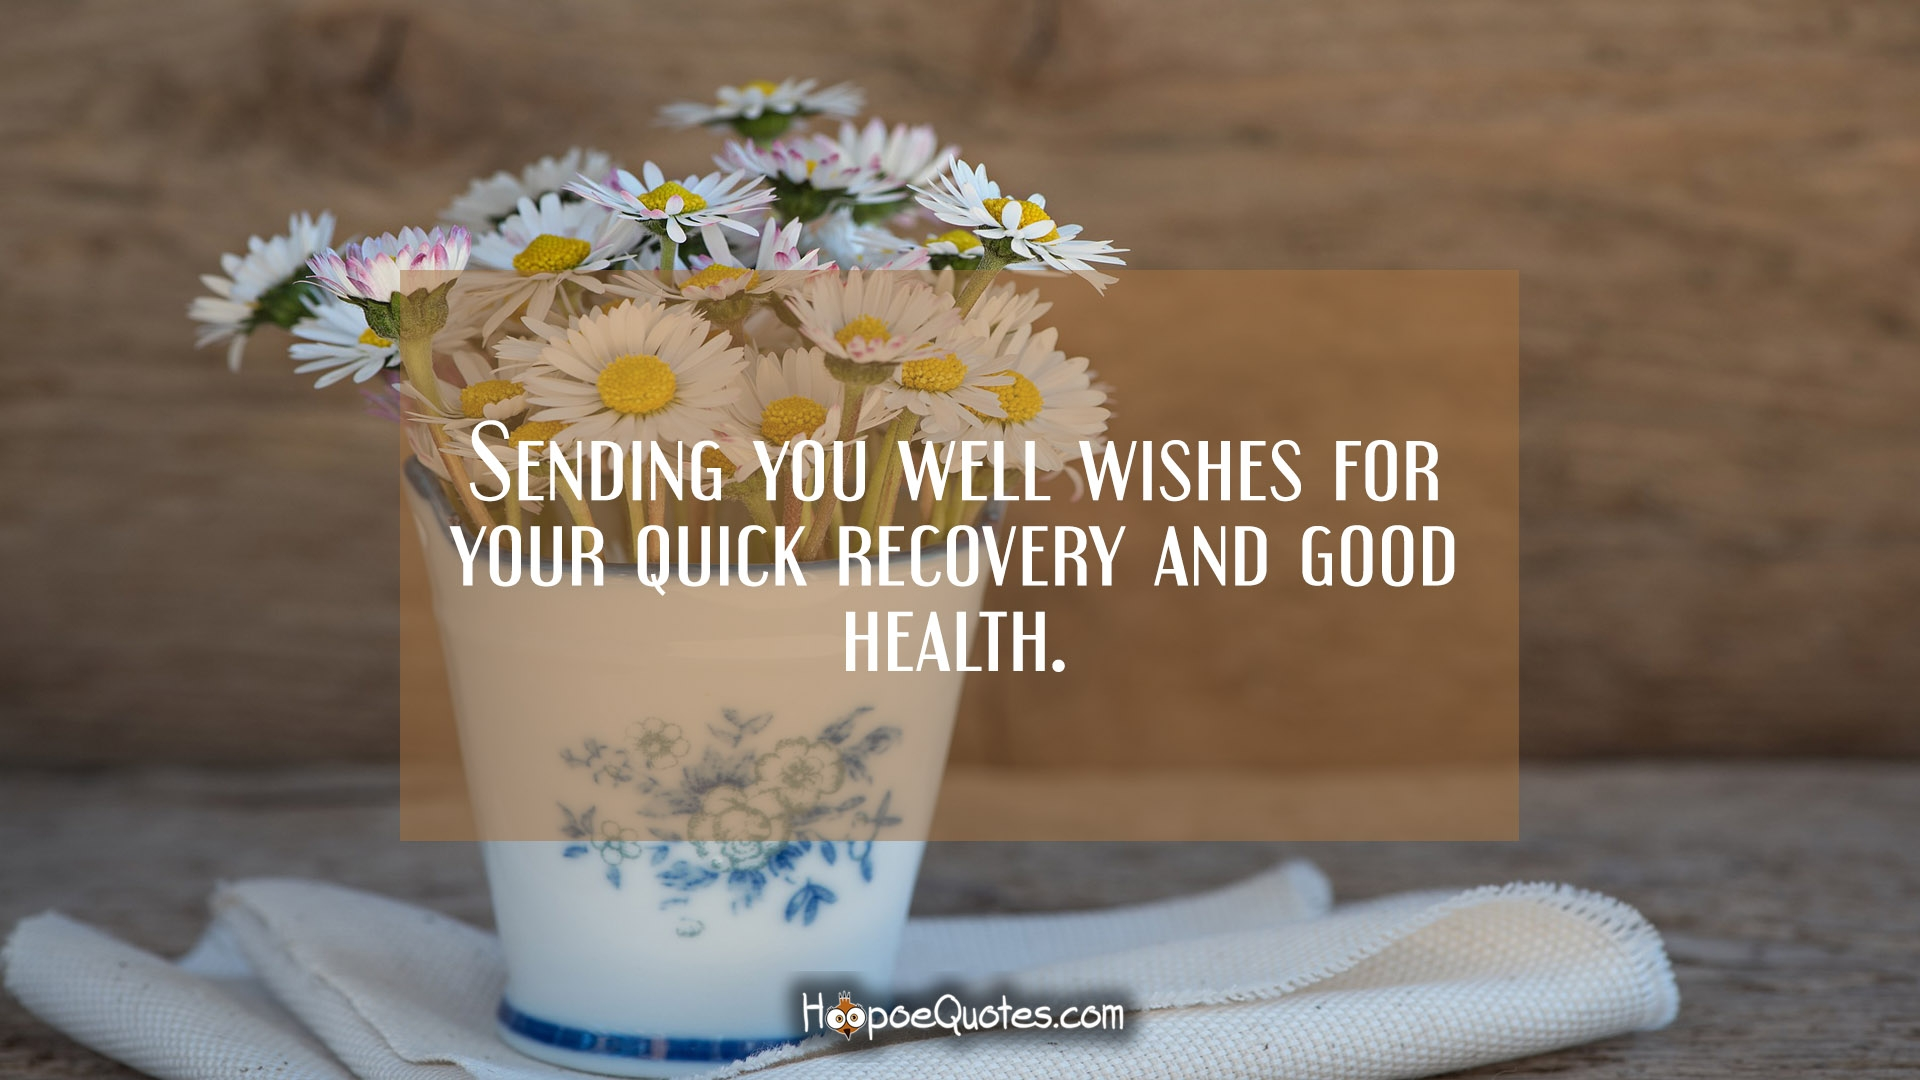 Get Well Soon Wishes Hoopoequotes Results From 40